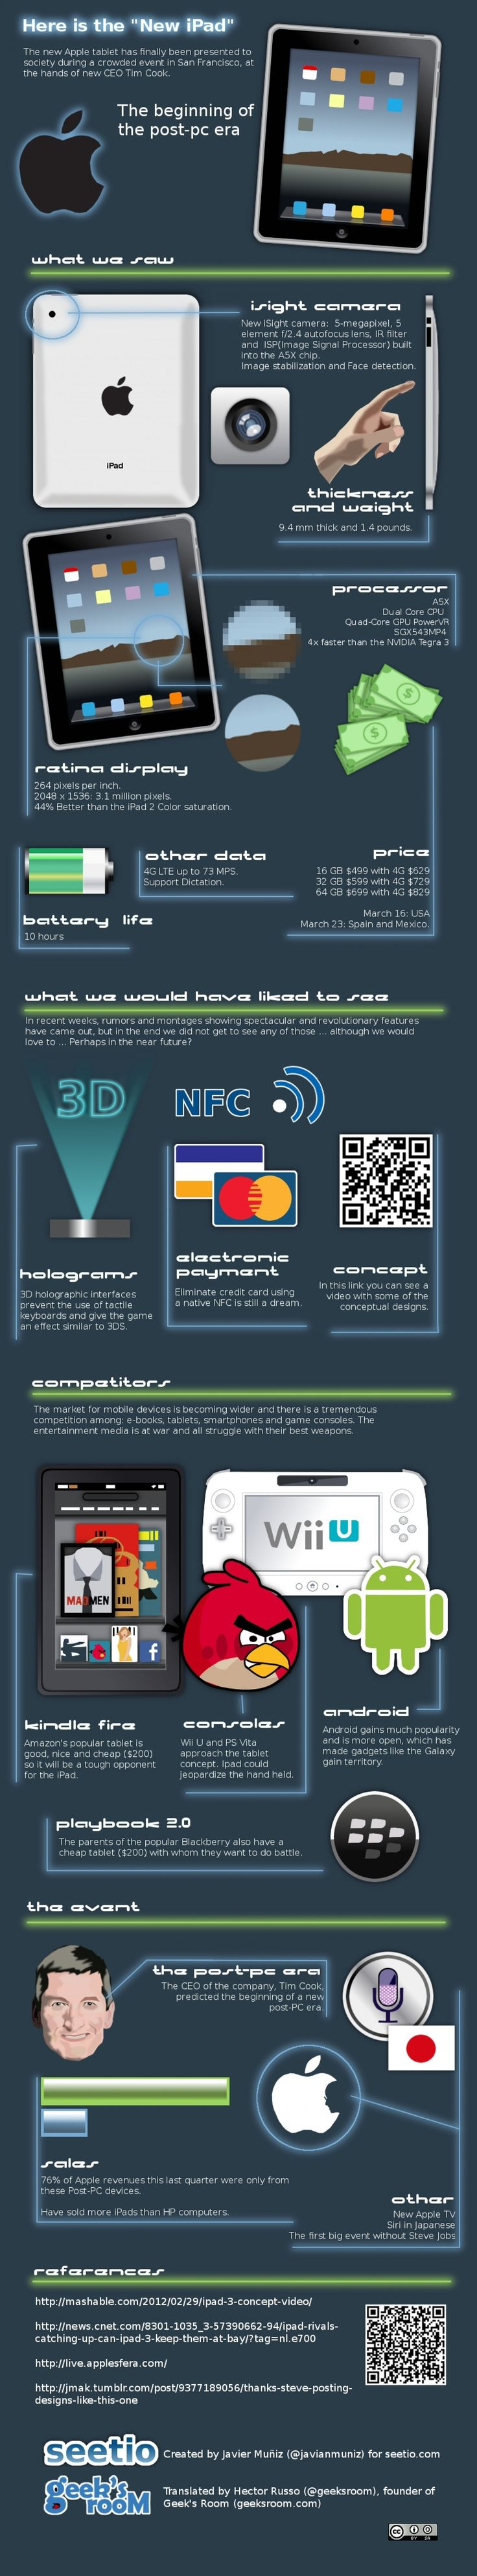 Here is the New iPad Infographic